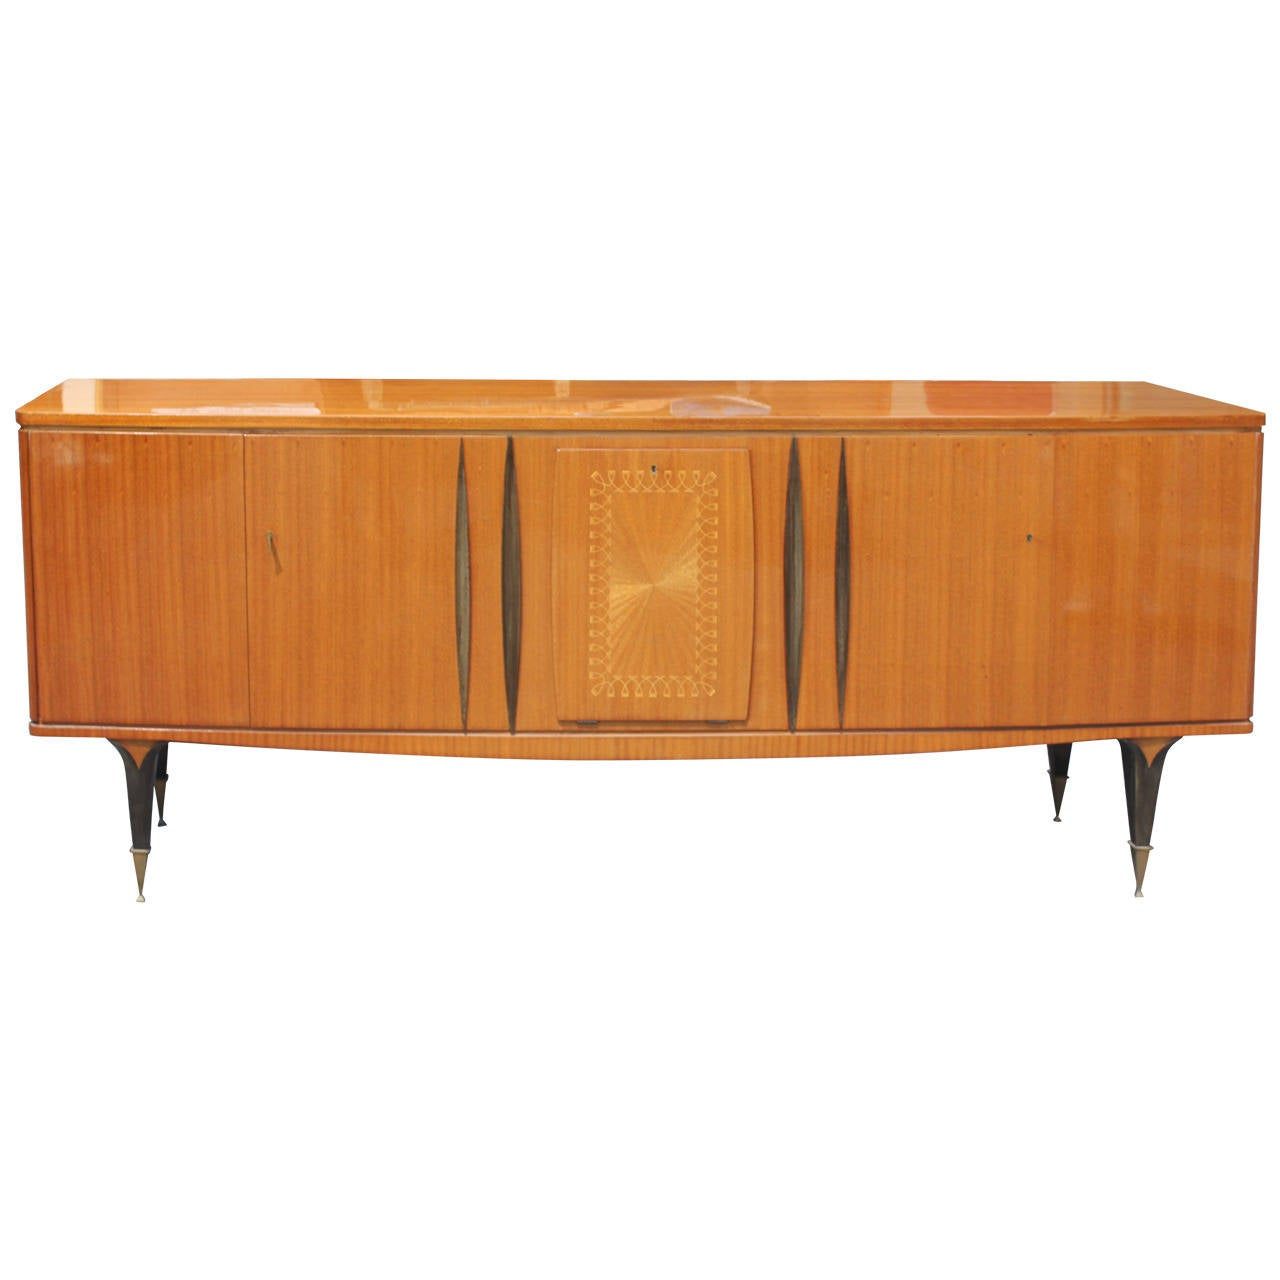 french art deco sideboard buffet grand scale flame mahogany circa 1940 at 1stdibs. Black Bedroom Furniture Sets. Home Design Ideas